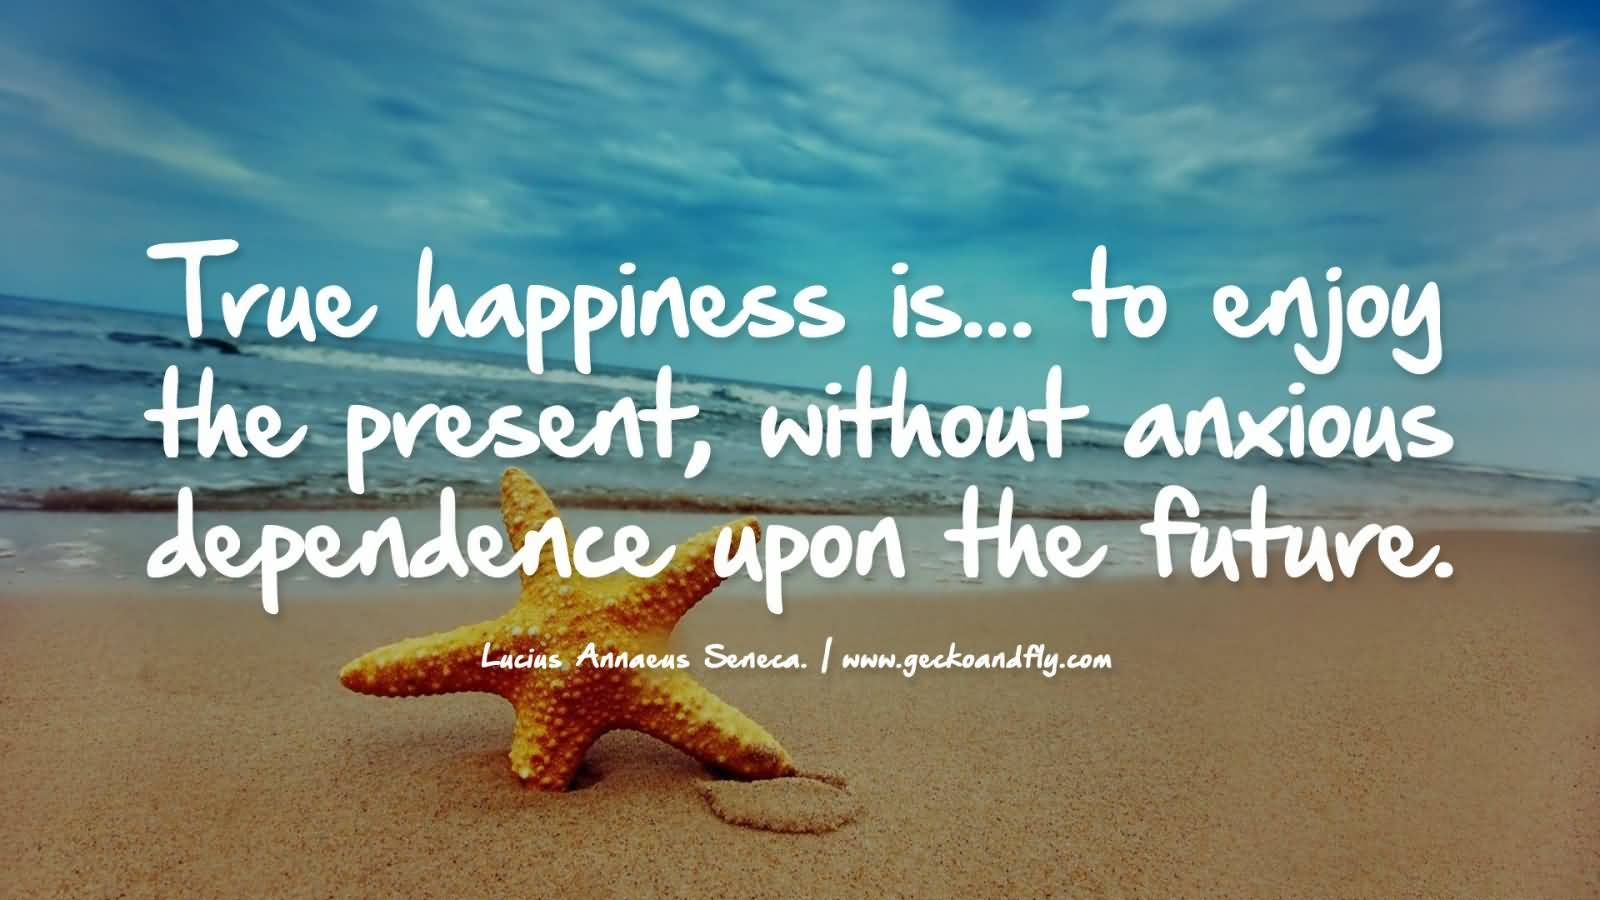 72+ Top Happiness Quotes and Sayings